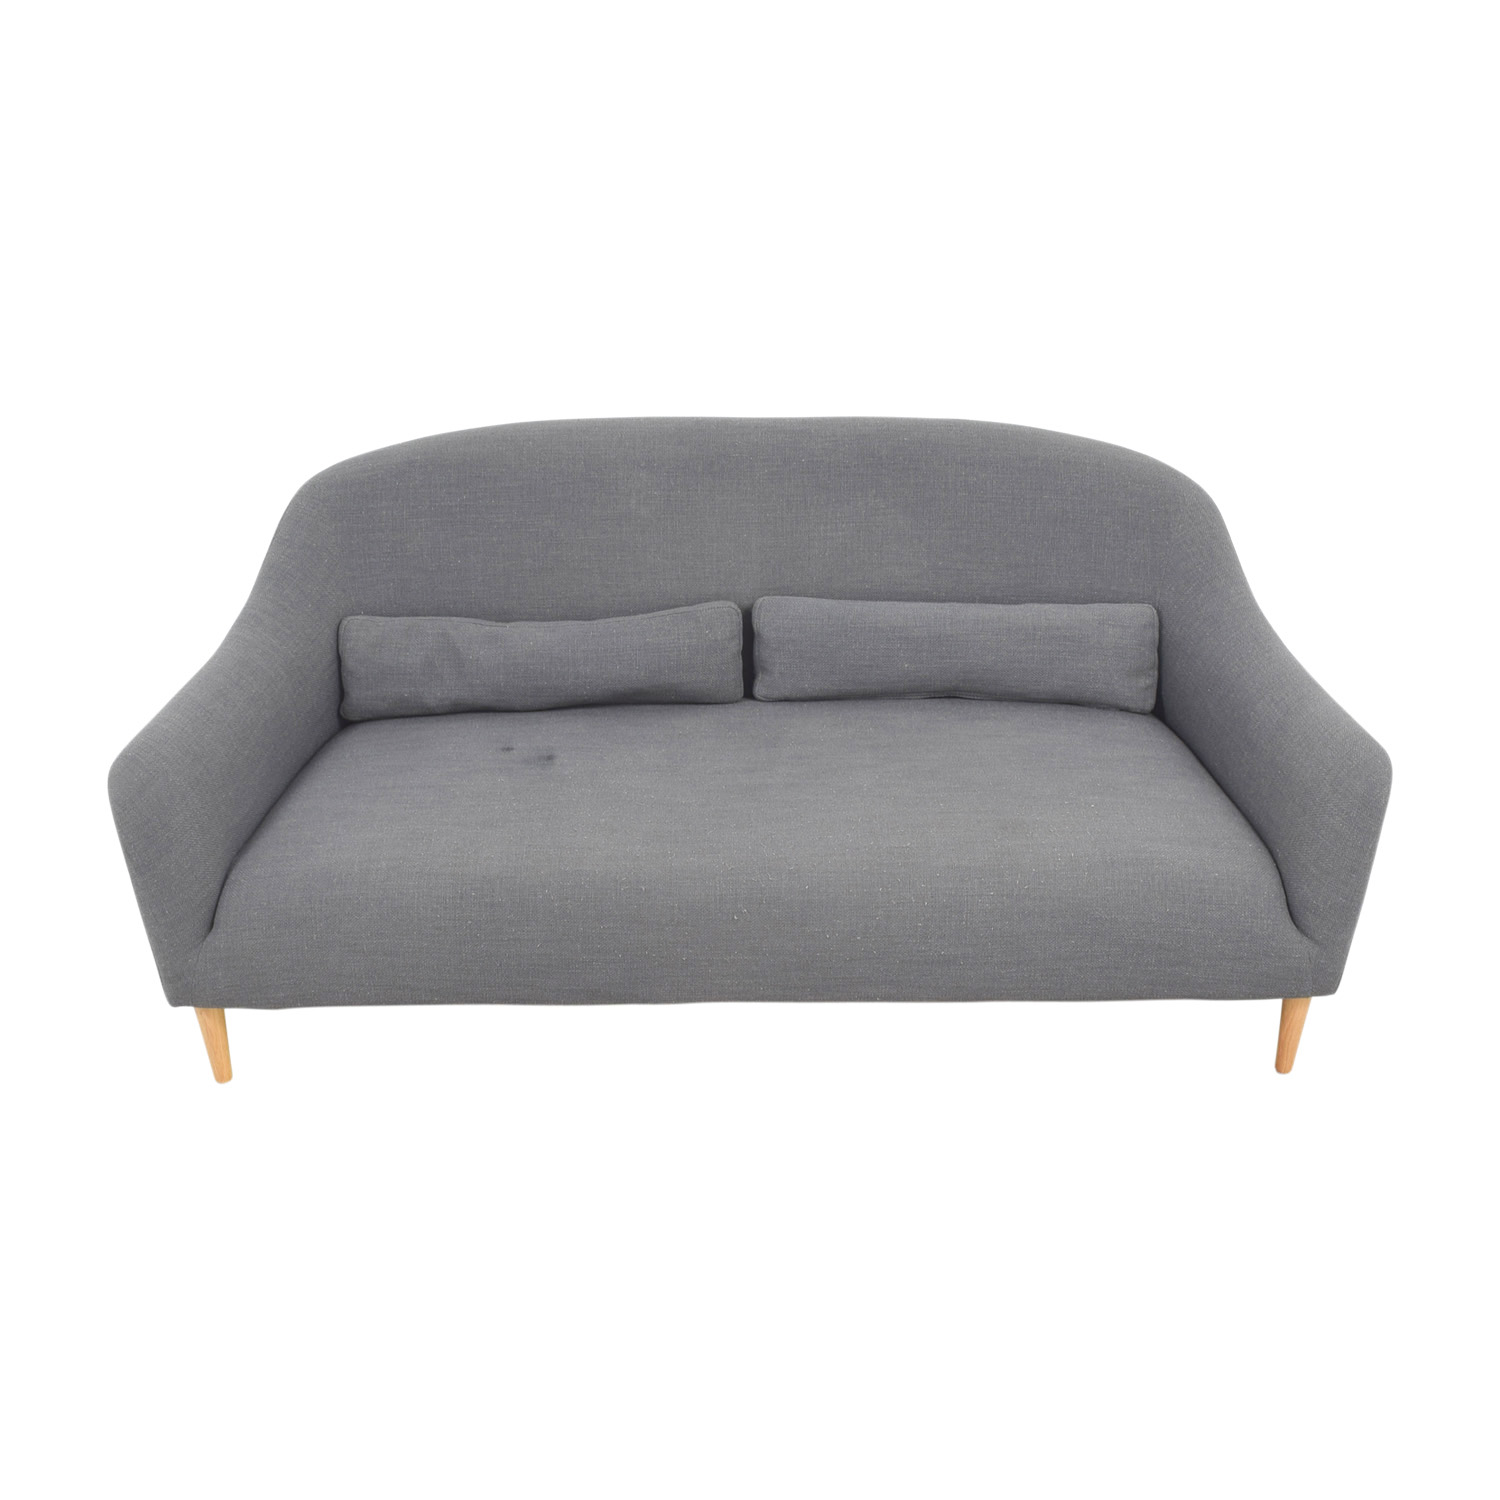 shop Crate & Barrel Pennie Single Cushion Sofa Crate & Barrel Classic Sofas